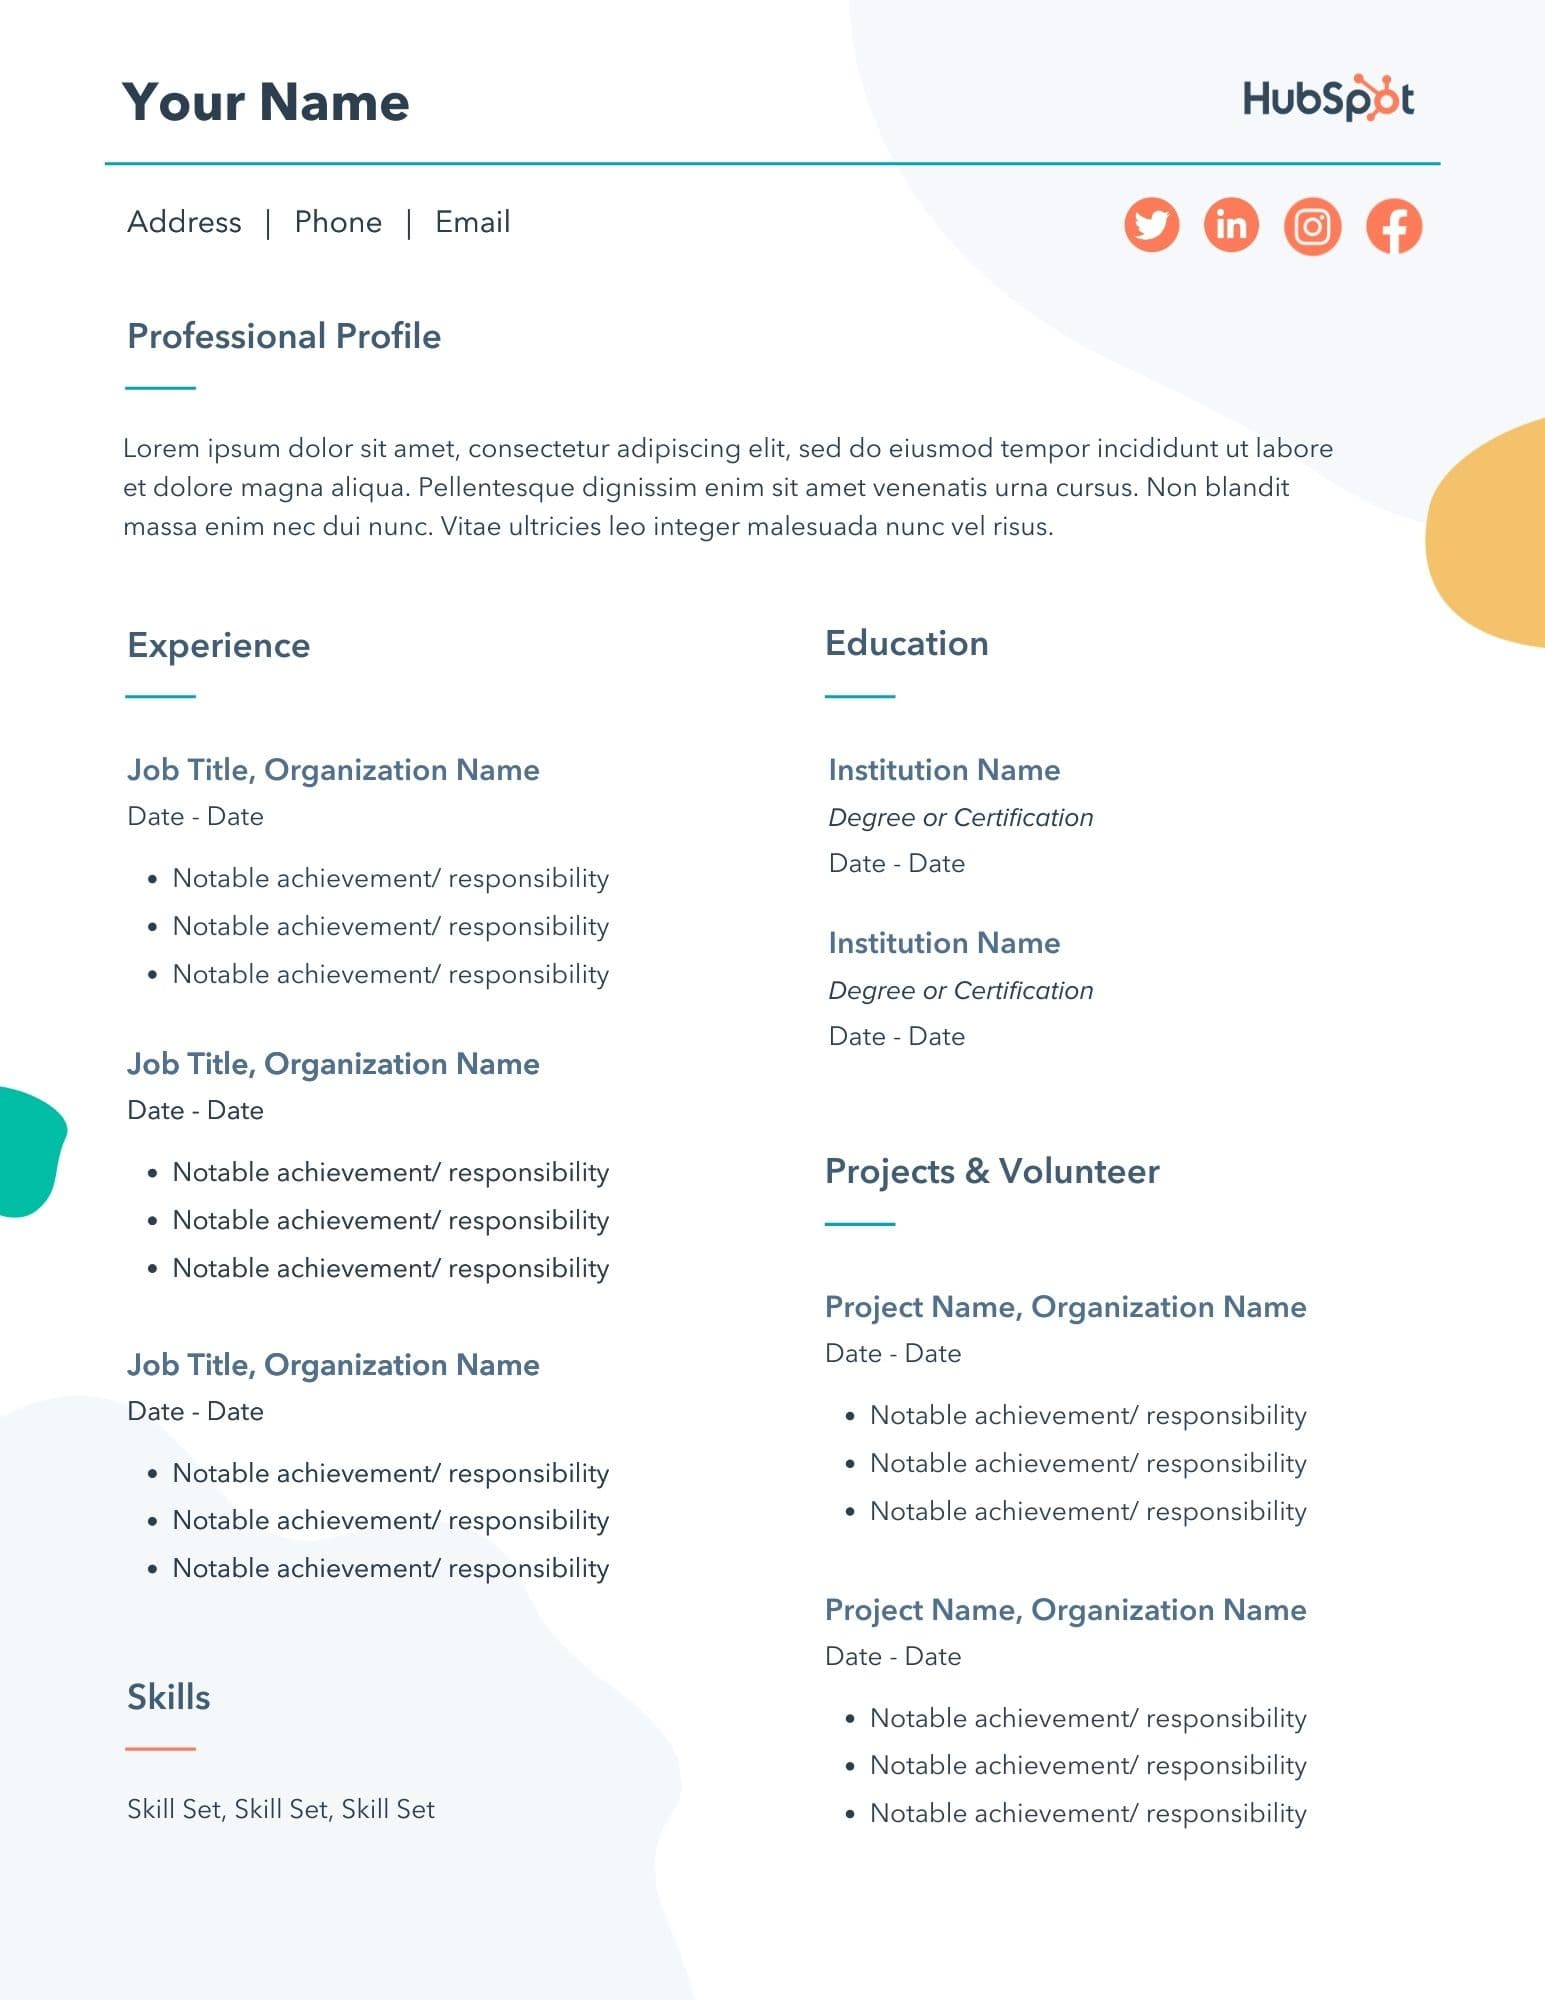 free resume templates for microsoft word to make your own build good template data entry Resume Build A Good Resume Free